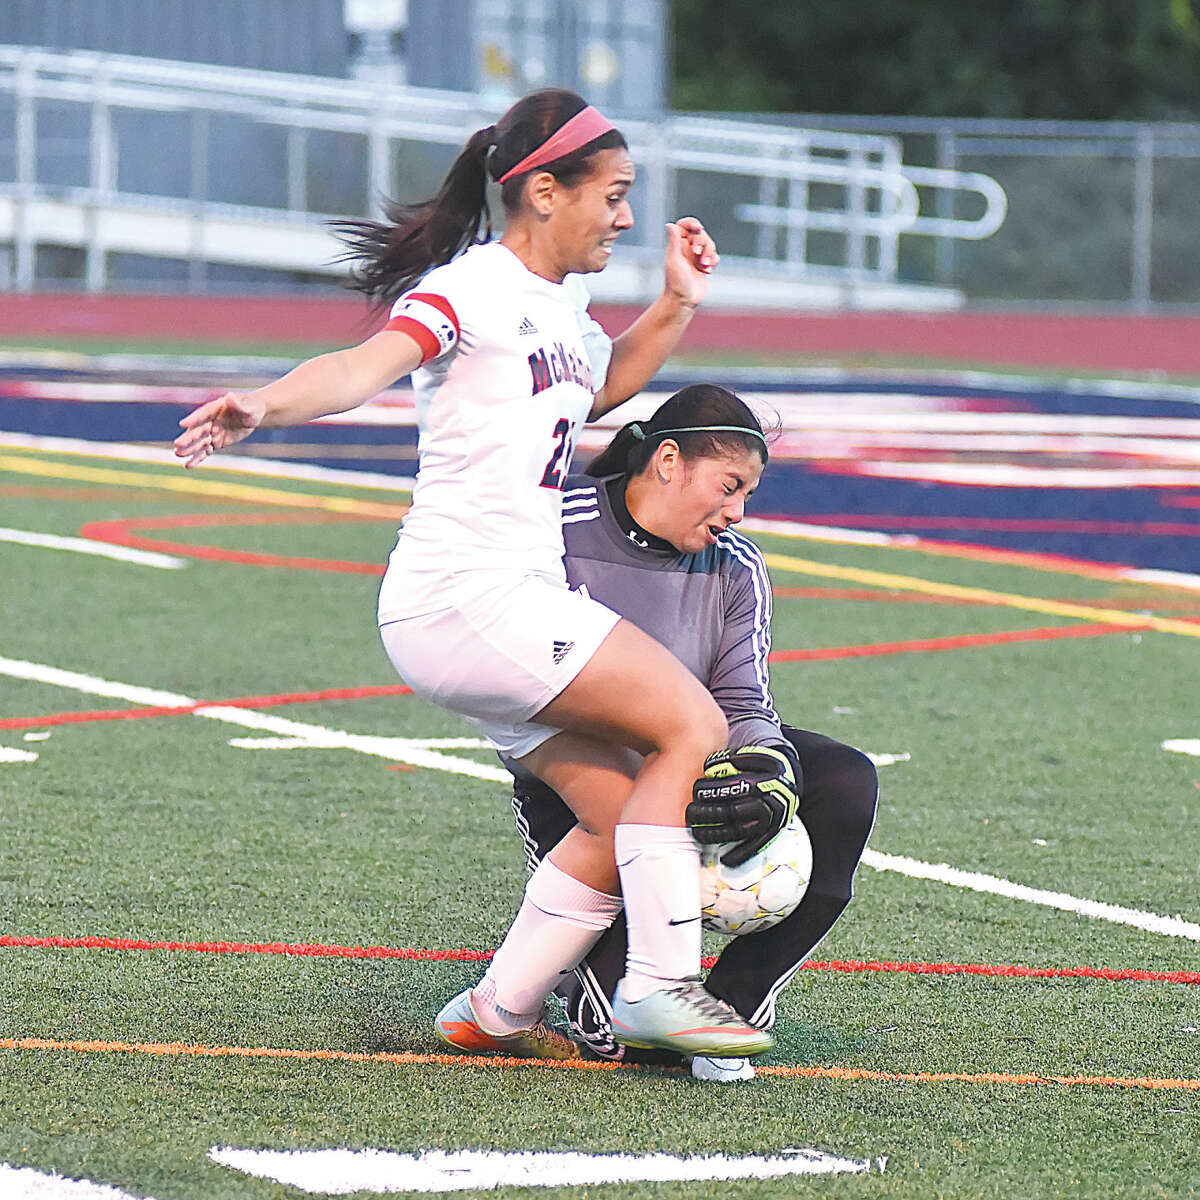 Hour photo/John Nash - Norwalk goalkeeper Imelda Lazaro, right, collides with Brien McMahon's Olivia Rosado as the two chase down a ball during Saturday's intra-city rivalry game at Casagrande Field. The two players were named their respective teams MVPs in a 1-1 tie.